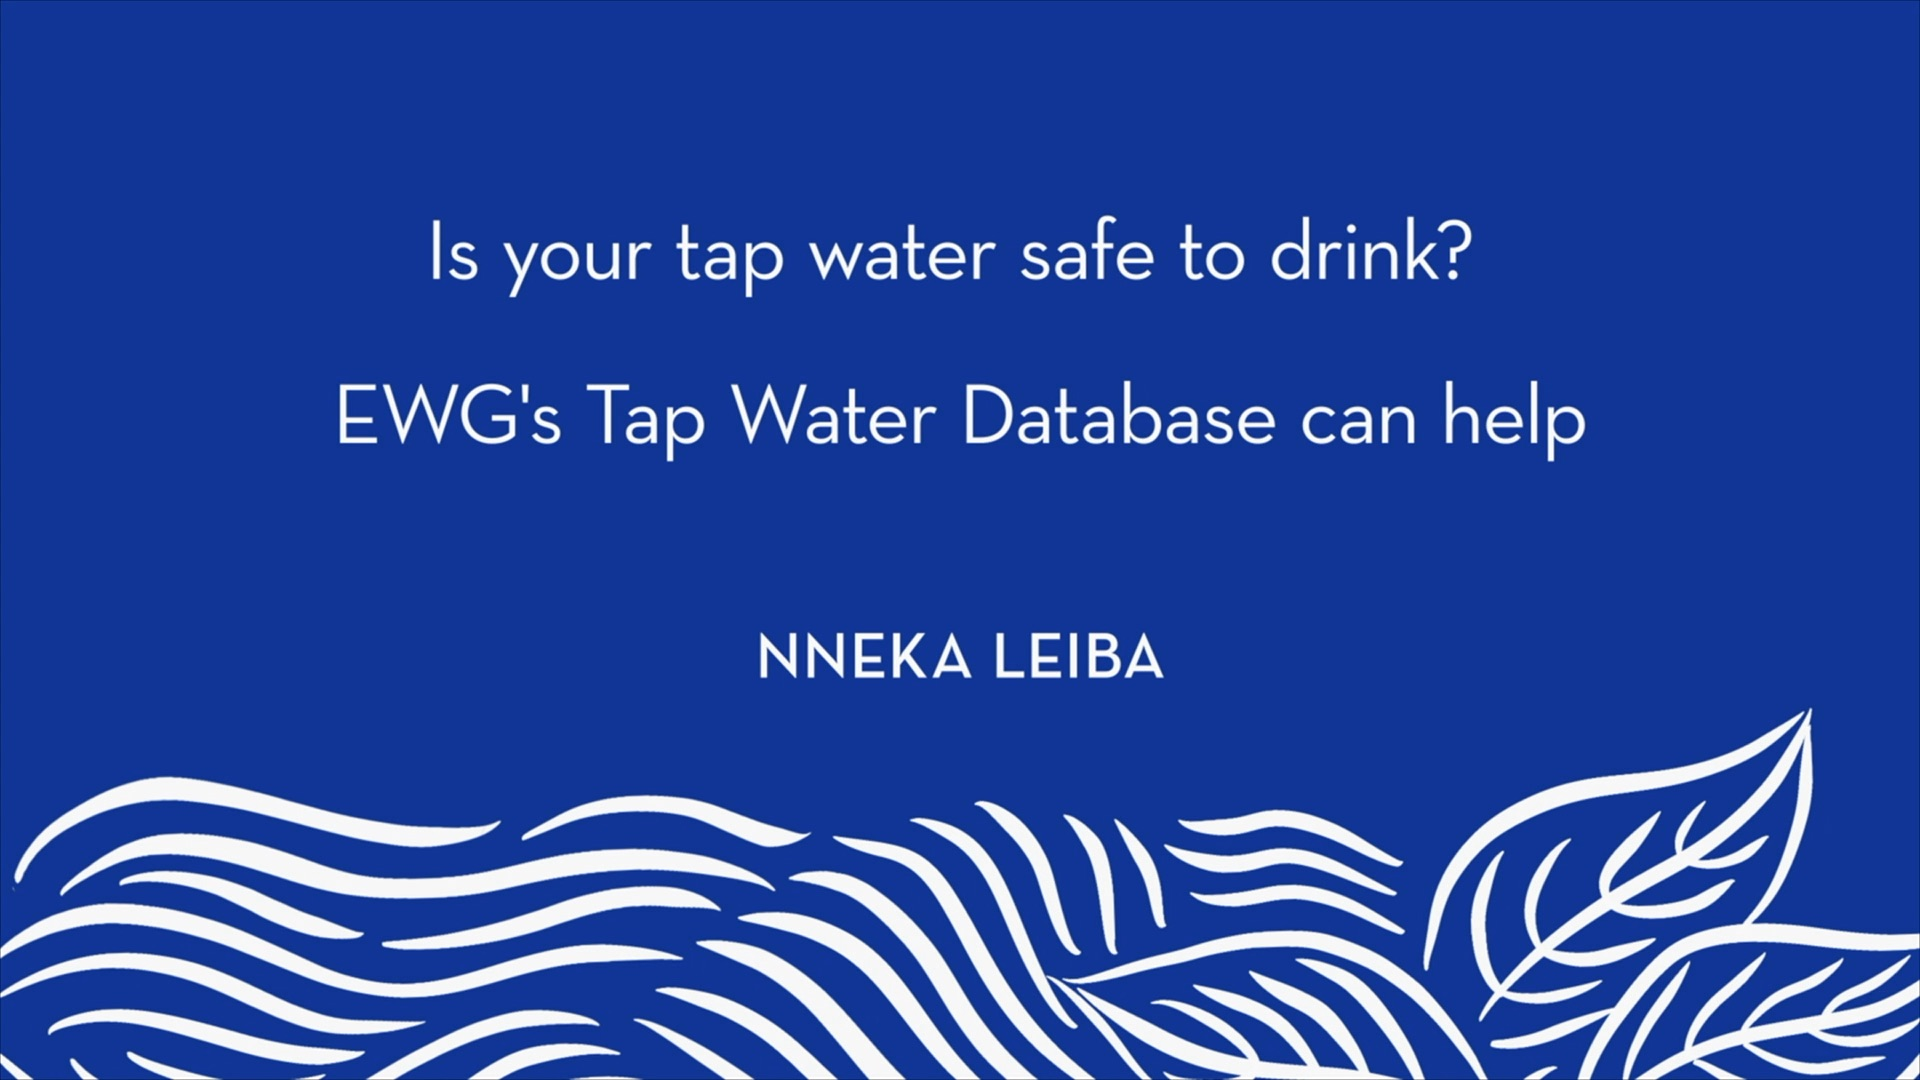 Nneka Leiba | Is your tap water safe to drink? EWG's Tap Water Database can help